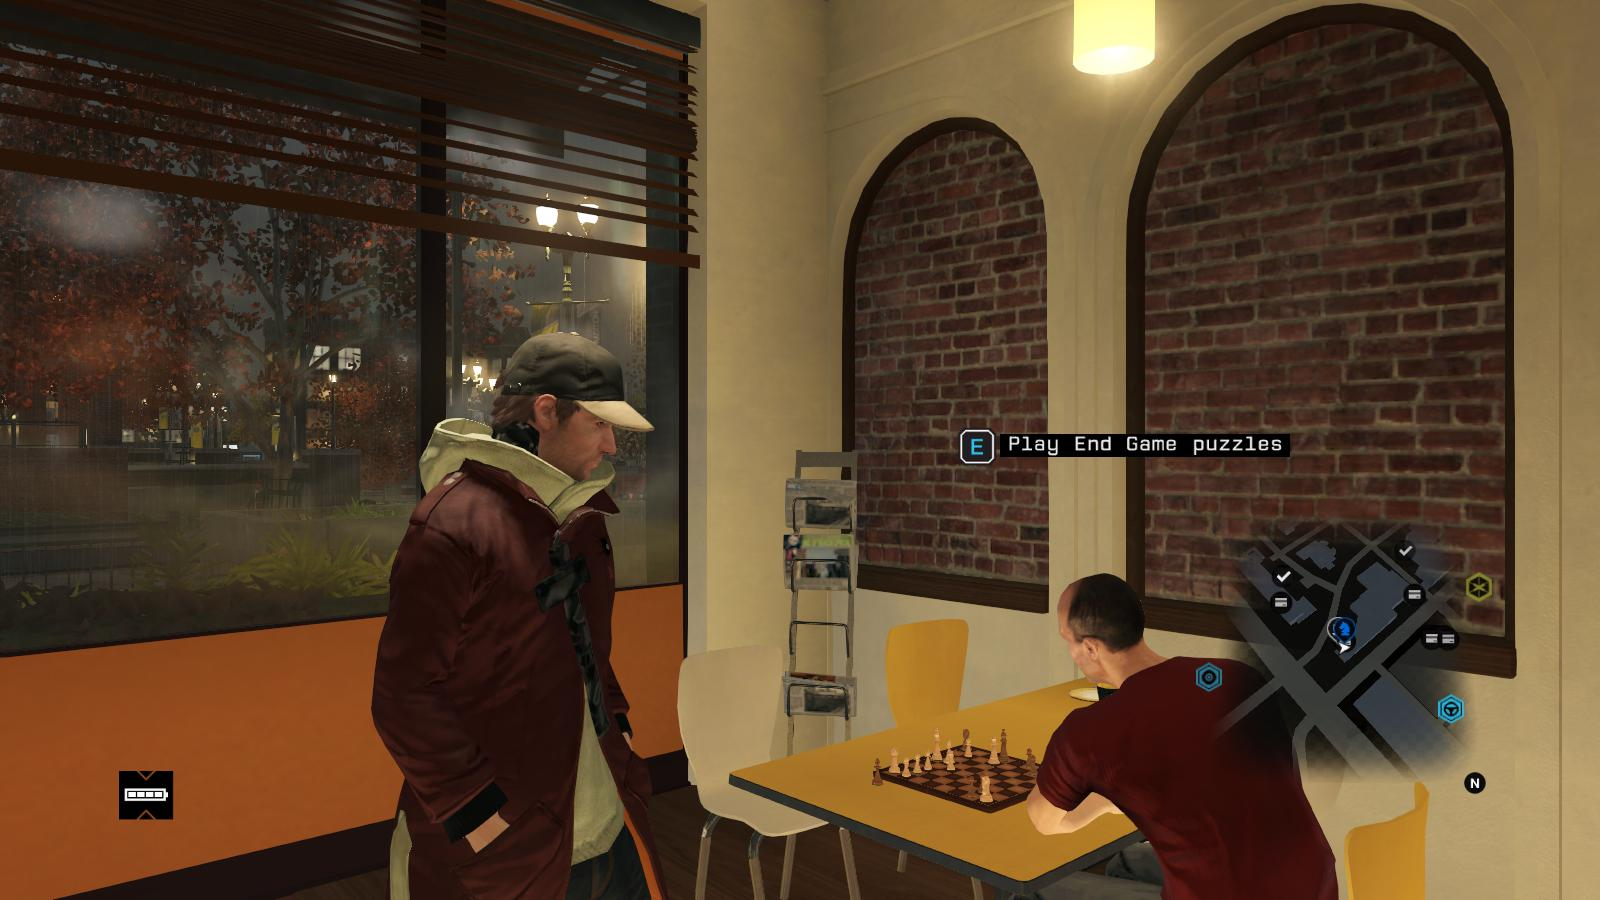 Watch_Dogs2014-7-18-23-34-24.jpg